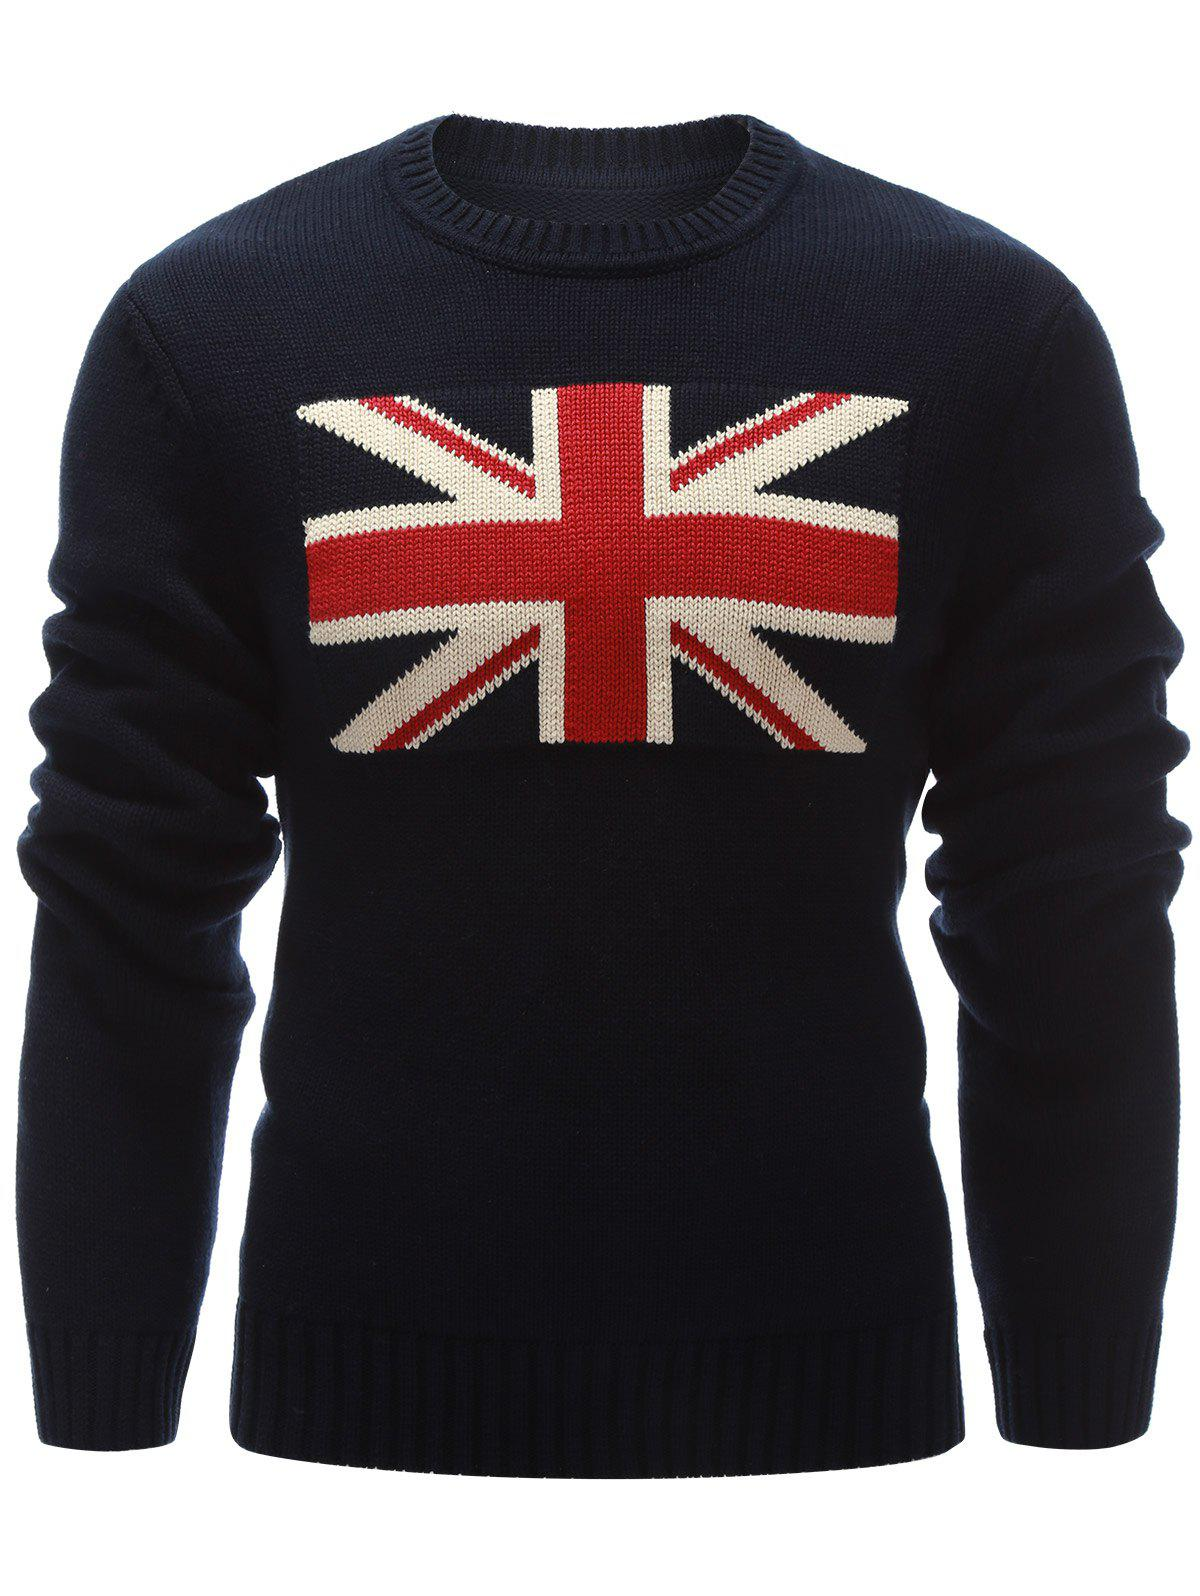 Flag Pattern Crew Neck Flat Patriotic Sweater 201271903